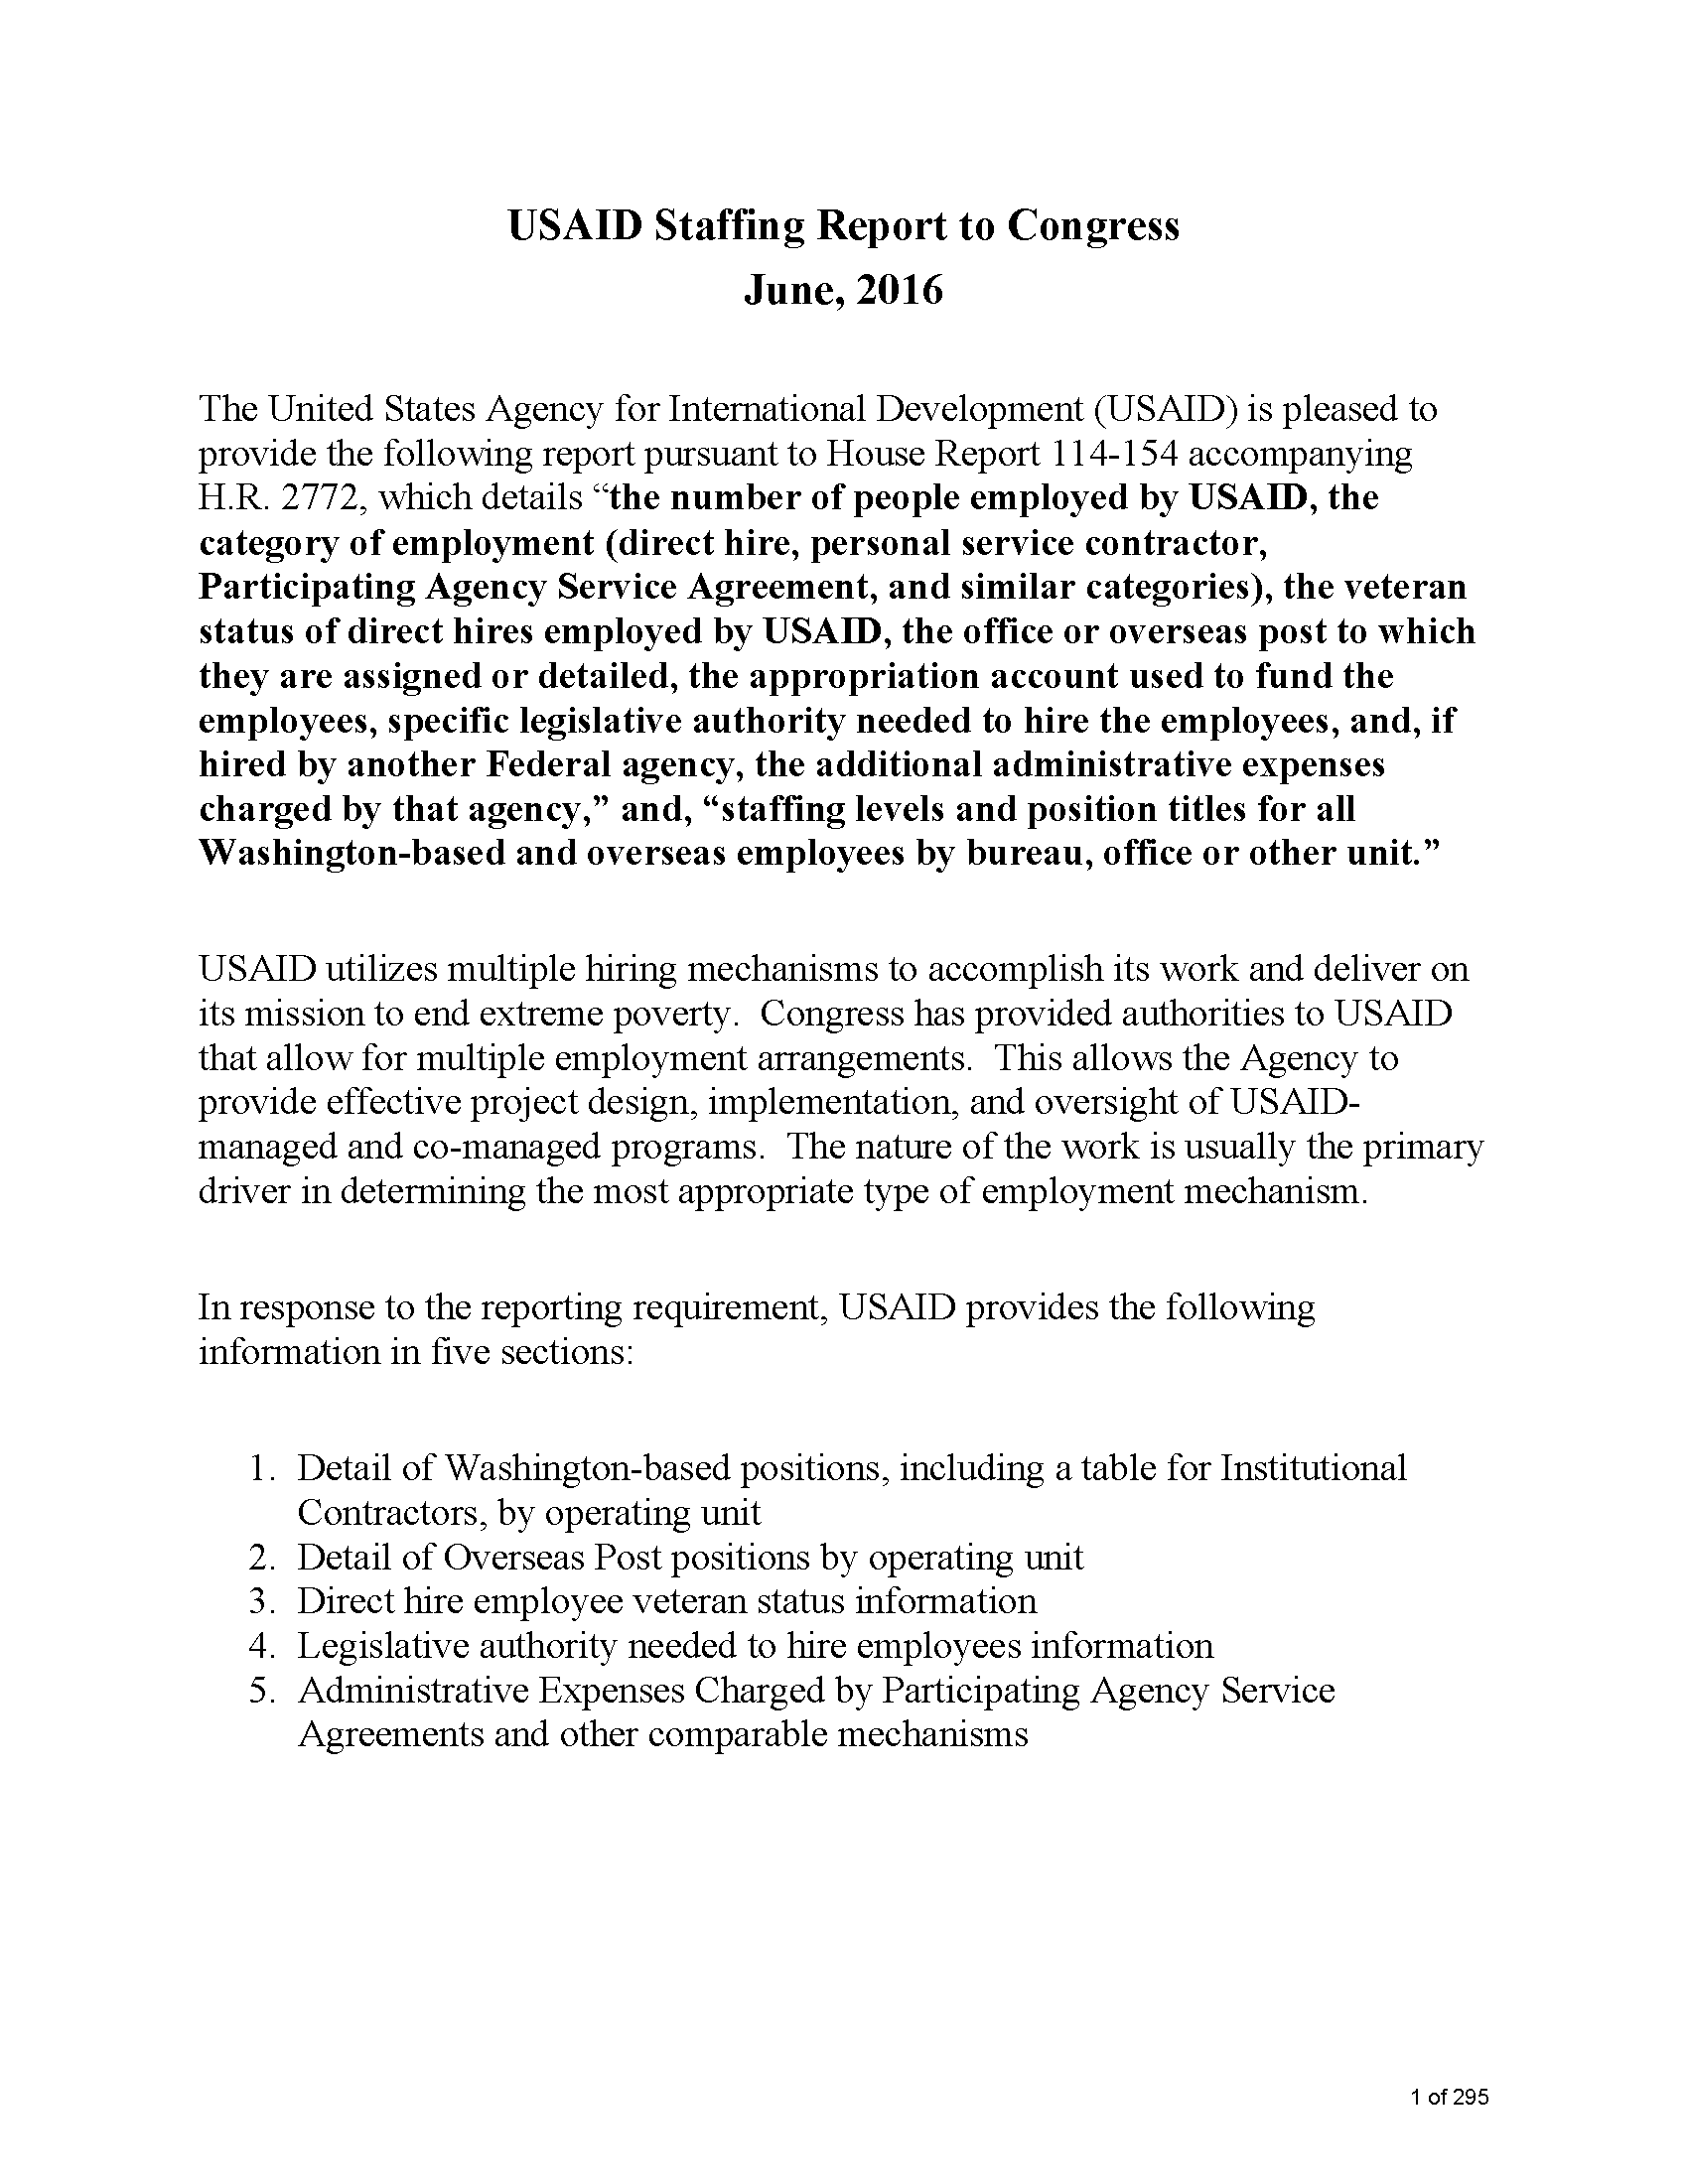 USAID Staffing Report to Congress - June, 2016